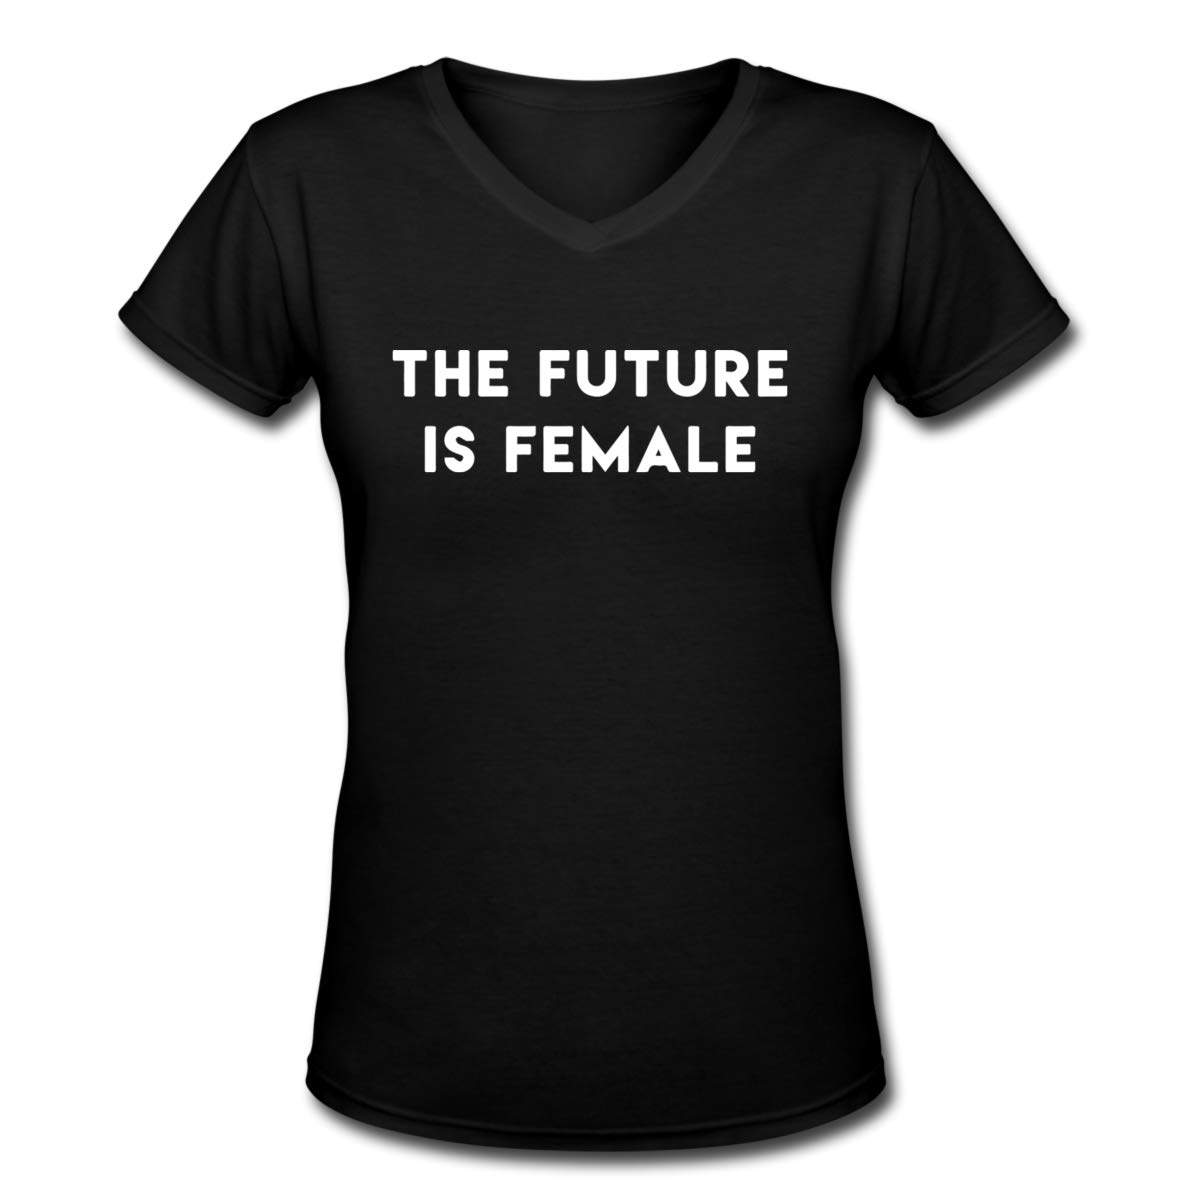 Women's T Shirt The Future is Female Tee Shirts Cotton T-Shirt Short-Sleeve V Neck Crop Top for Women Youth Girls Black M by BKashy